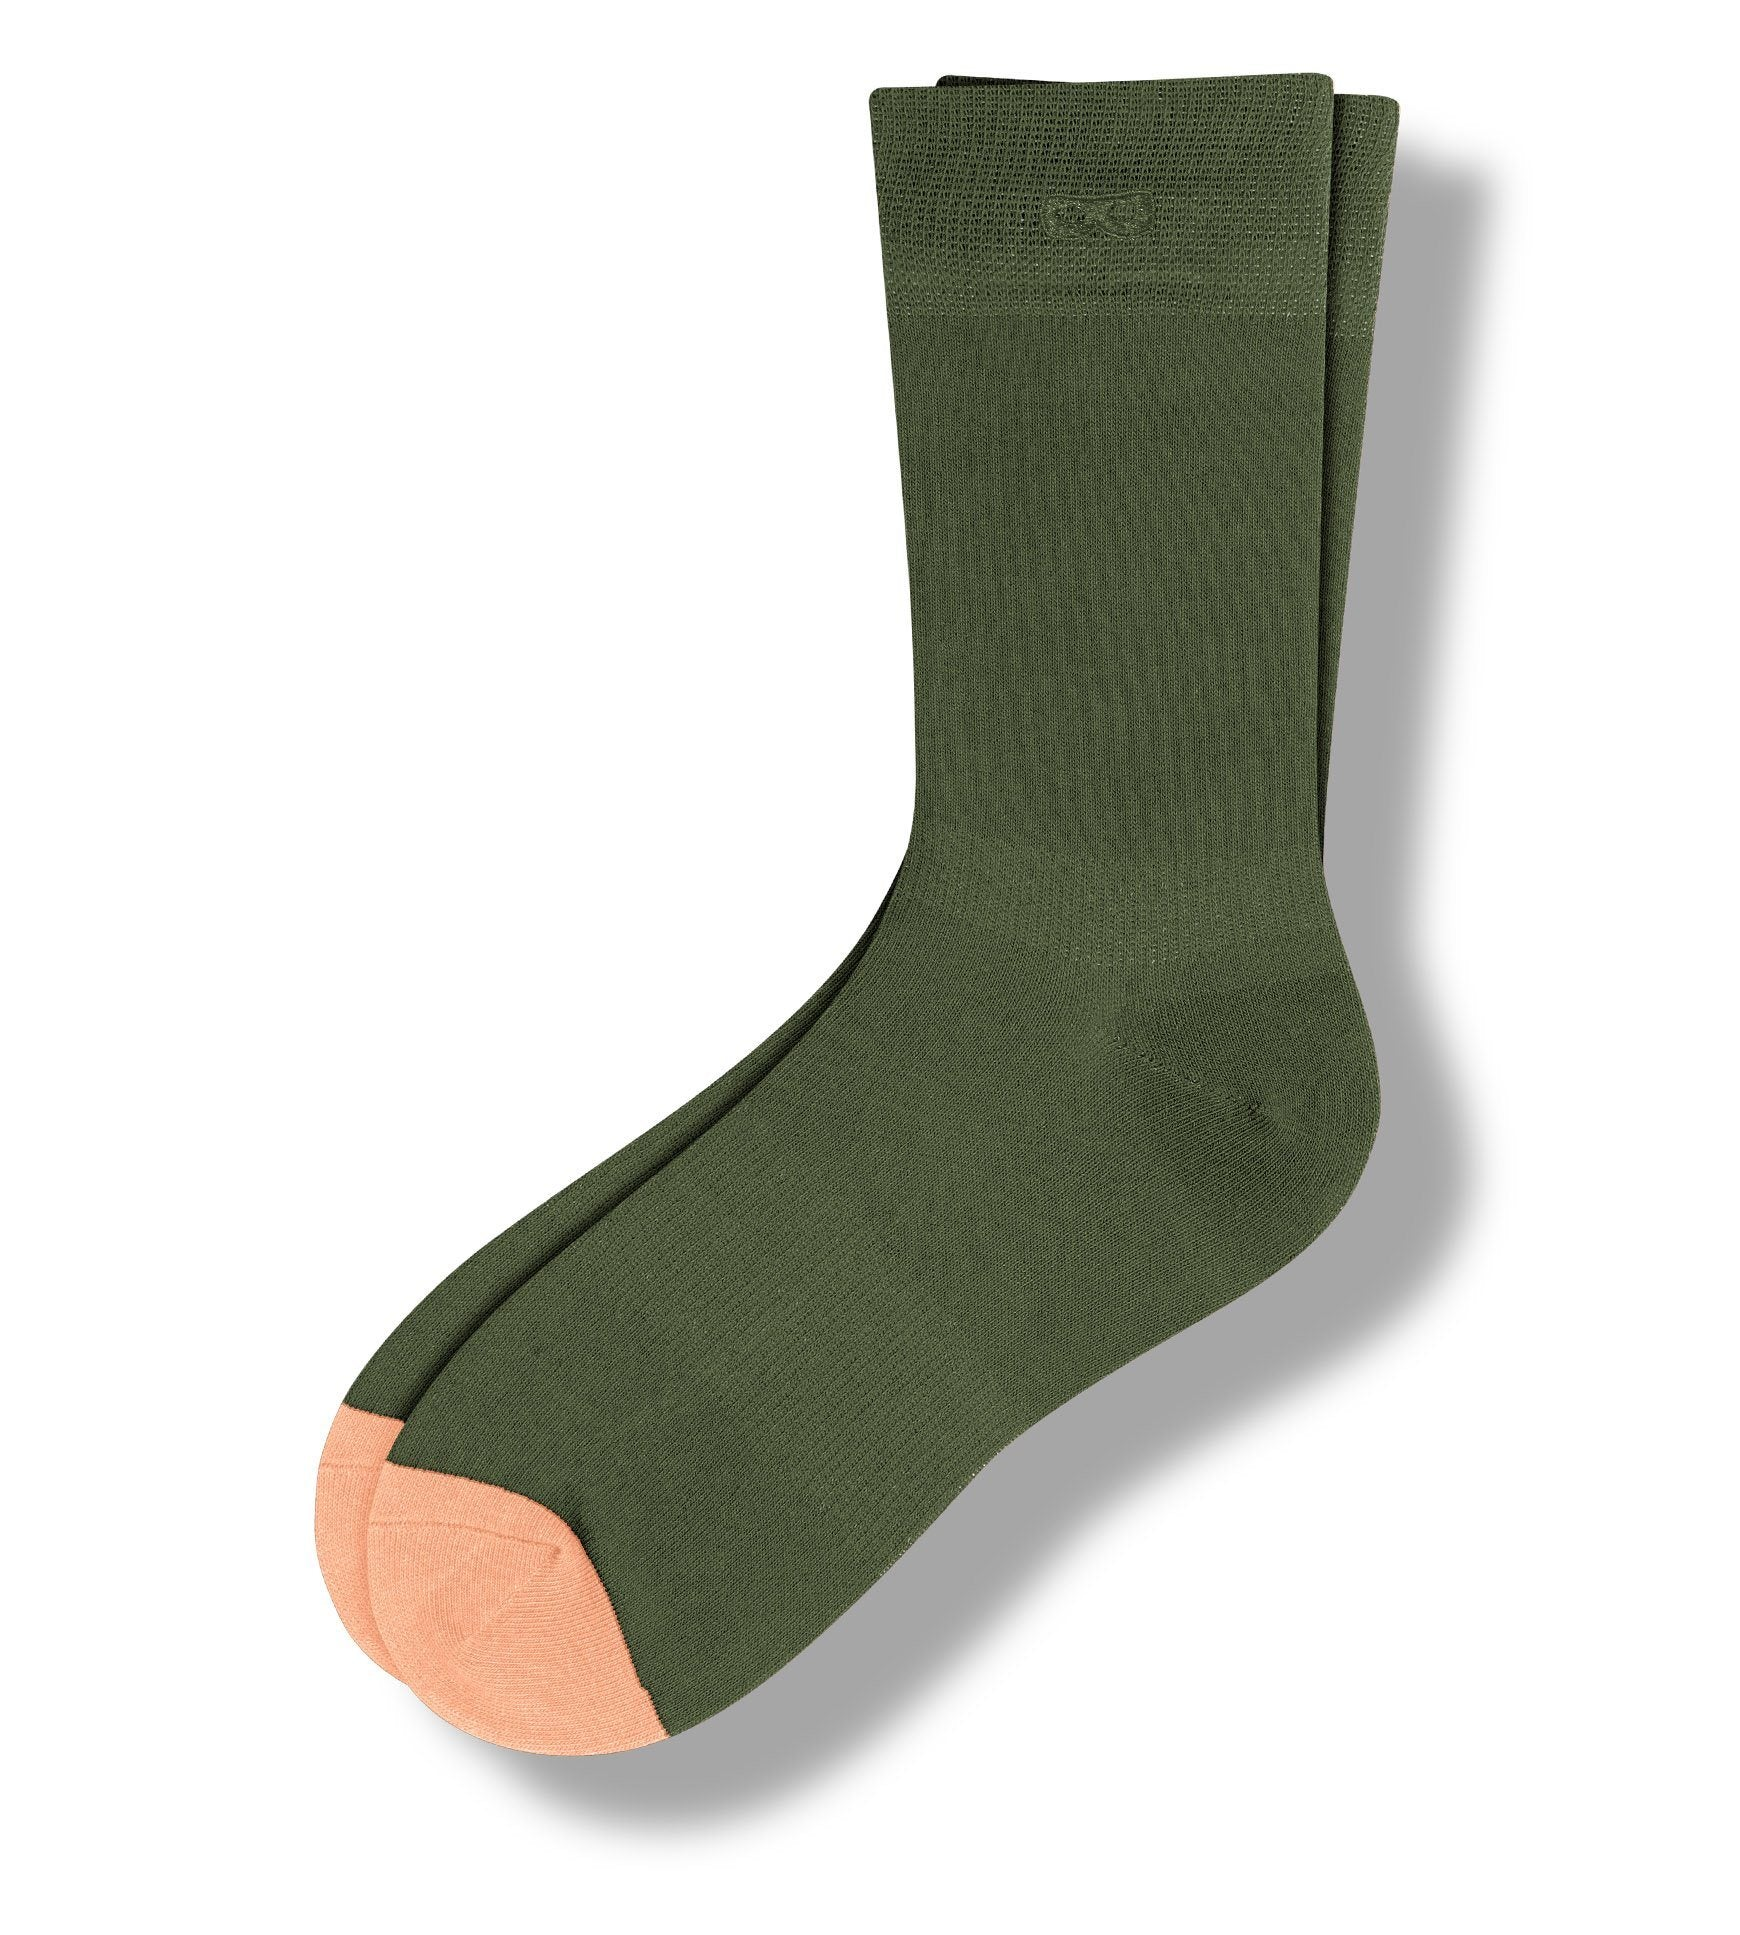 Army Men's Prism Crew Socks